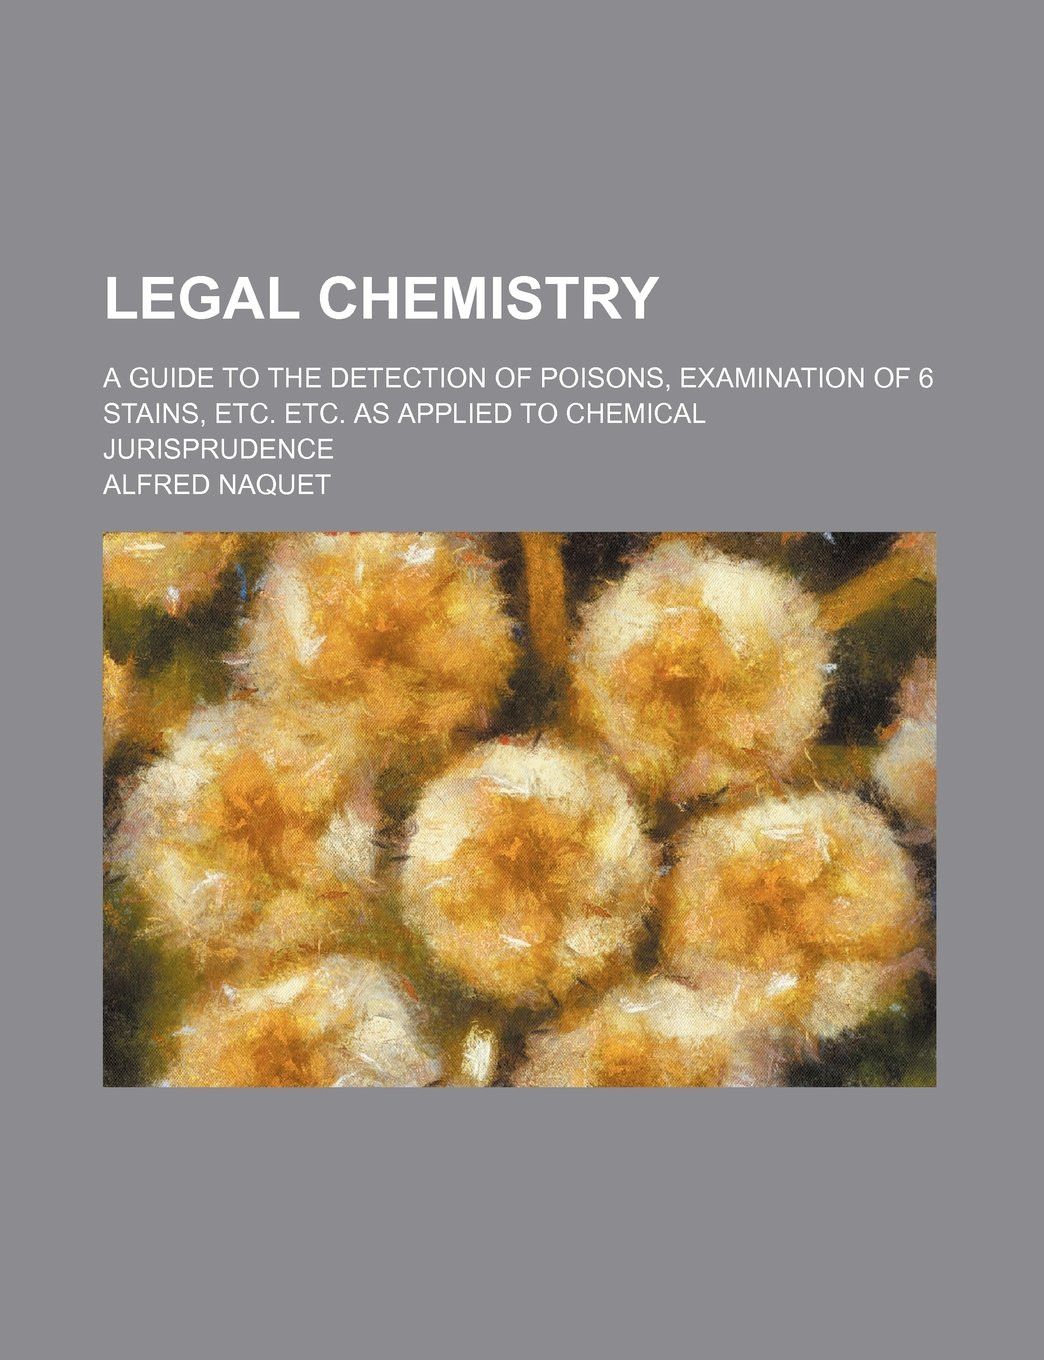 Legal Chemistry; A Guide to the Detection of Poisons, Examination of 6 Stains, Etc. Etc. as Applied to Chemical Jurisprudence: Amazon.es: Alfred Naquet: ...